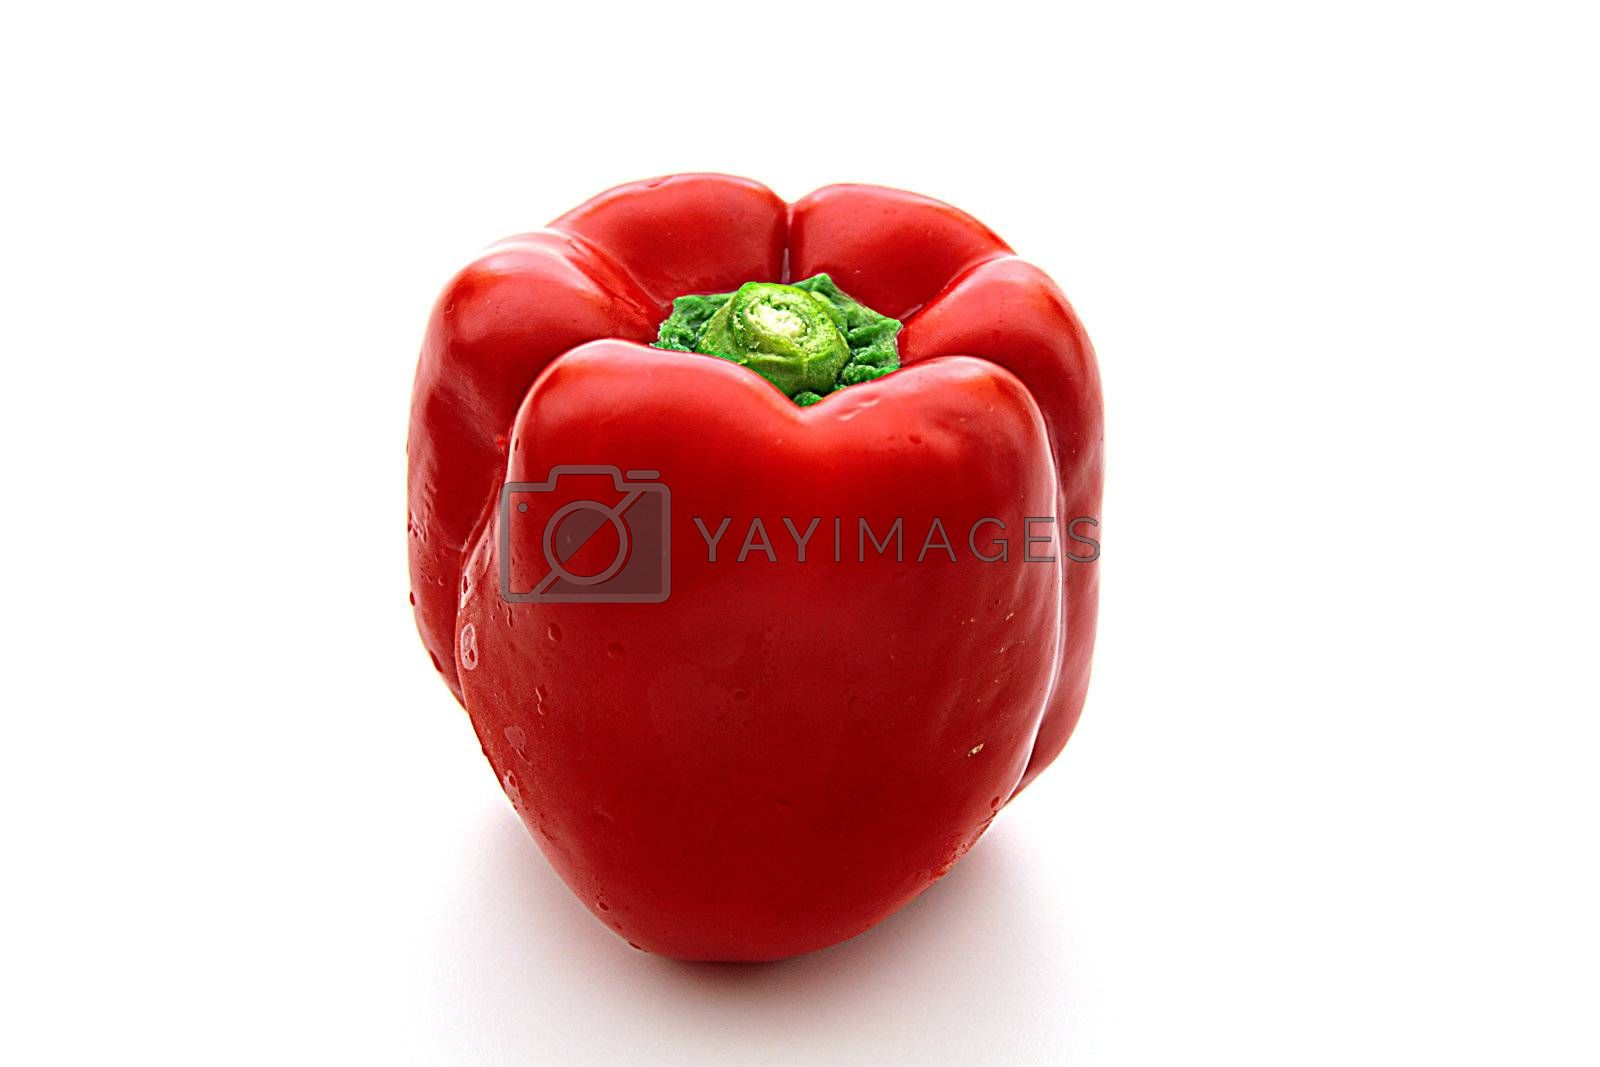 One red sweet pepper on a white background.